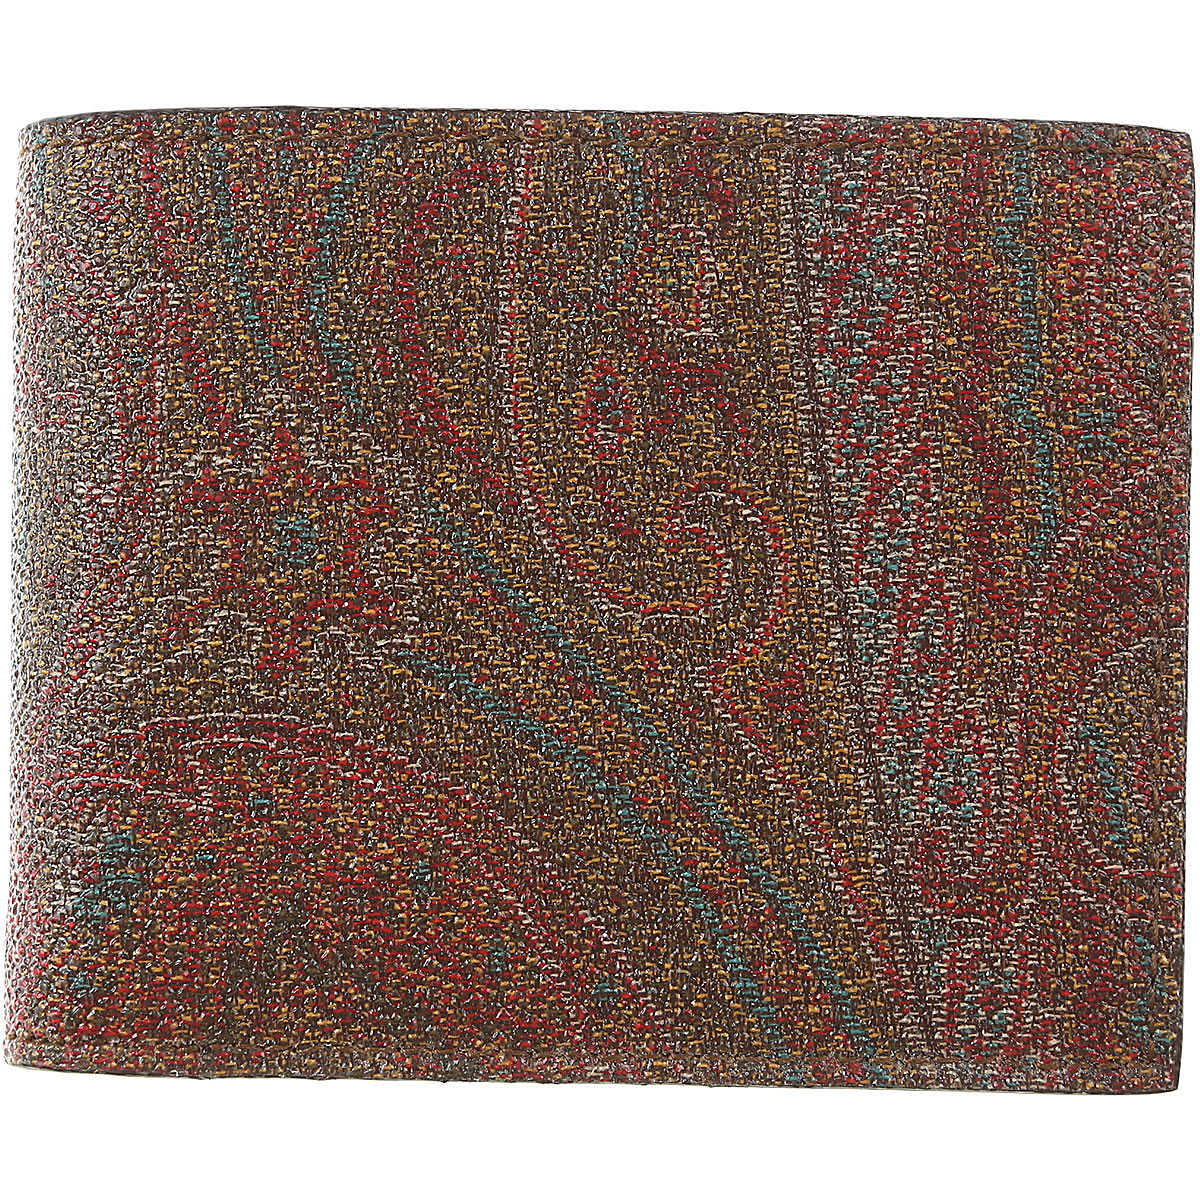 Etro Wallet for Men Multicolor Canada - GOOFASH - Mens WALLETS